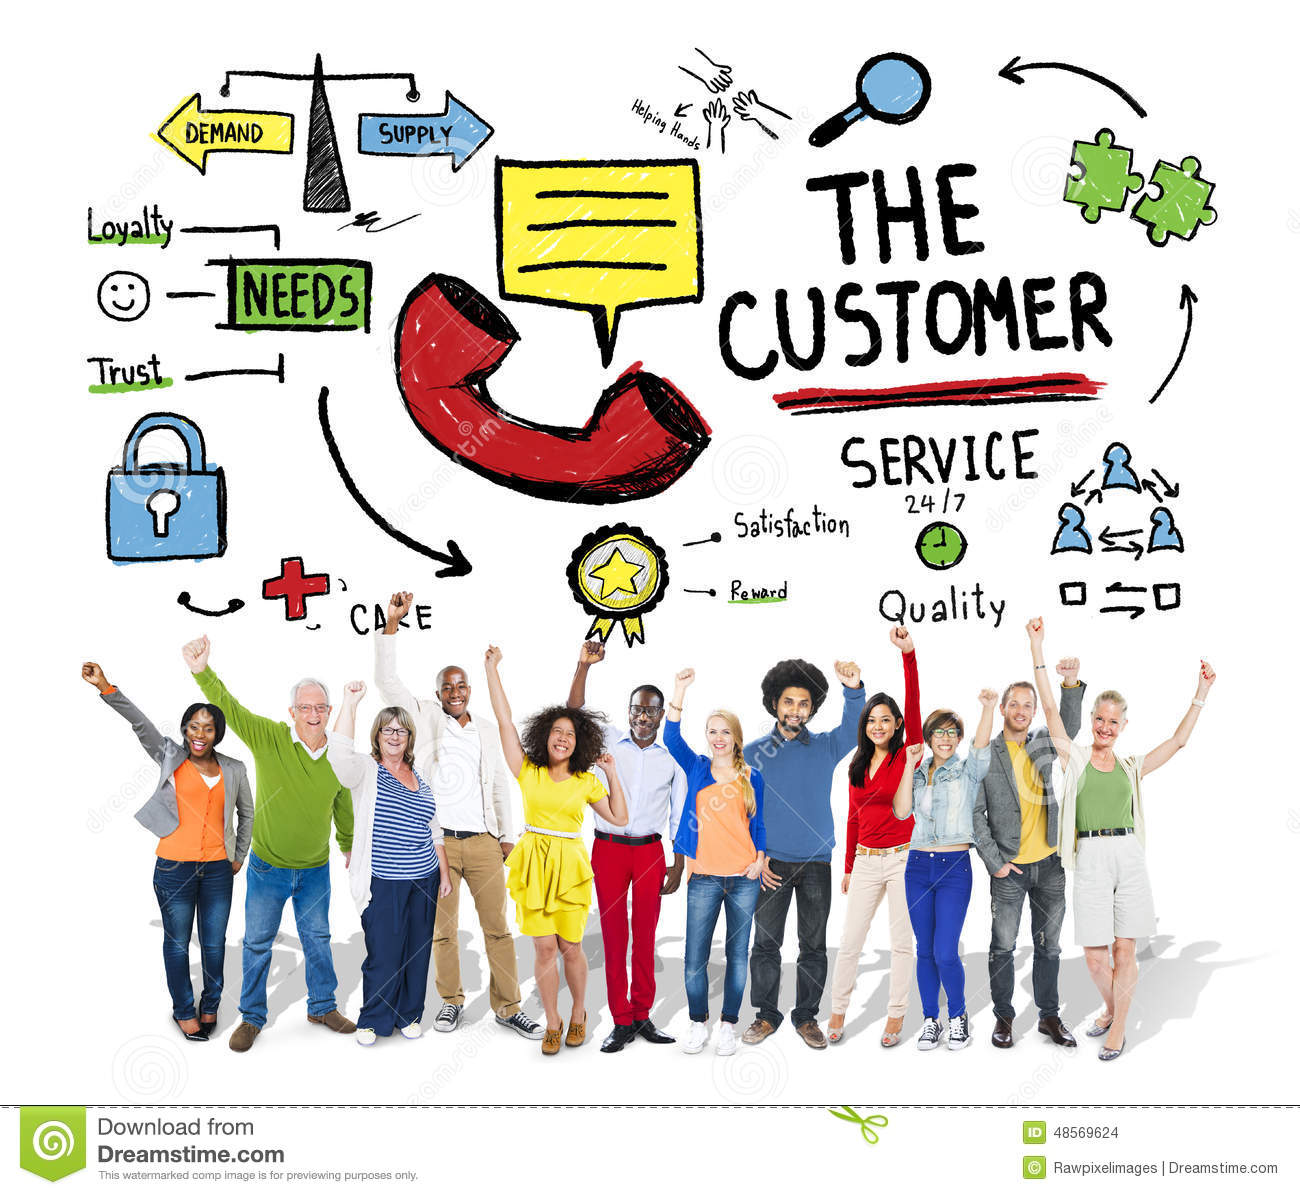 customer concept in marketing Definition of customer concept: a marketing idea focused on satisfying client needs over those of the business that produces the goods and services they consume.